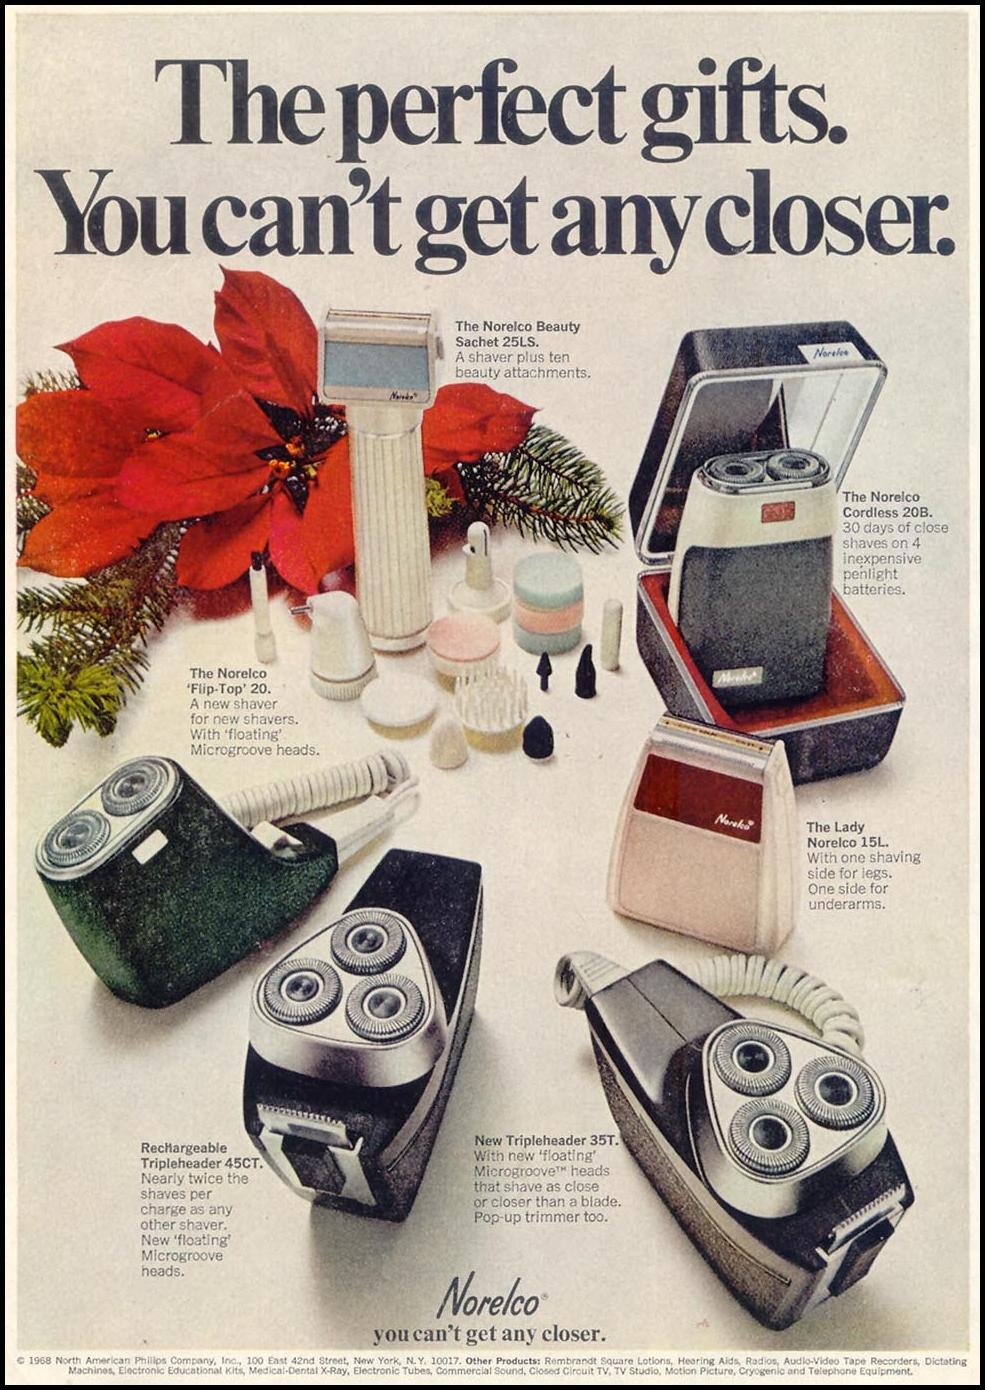 NORELCO ELECTRIC RAZORS SATURDAY EVENING POST 12/28/1968 p. 12